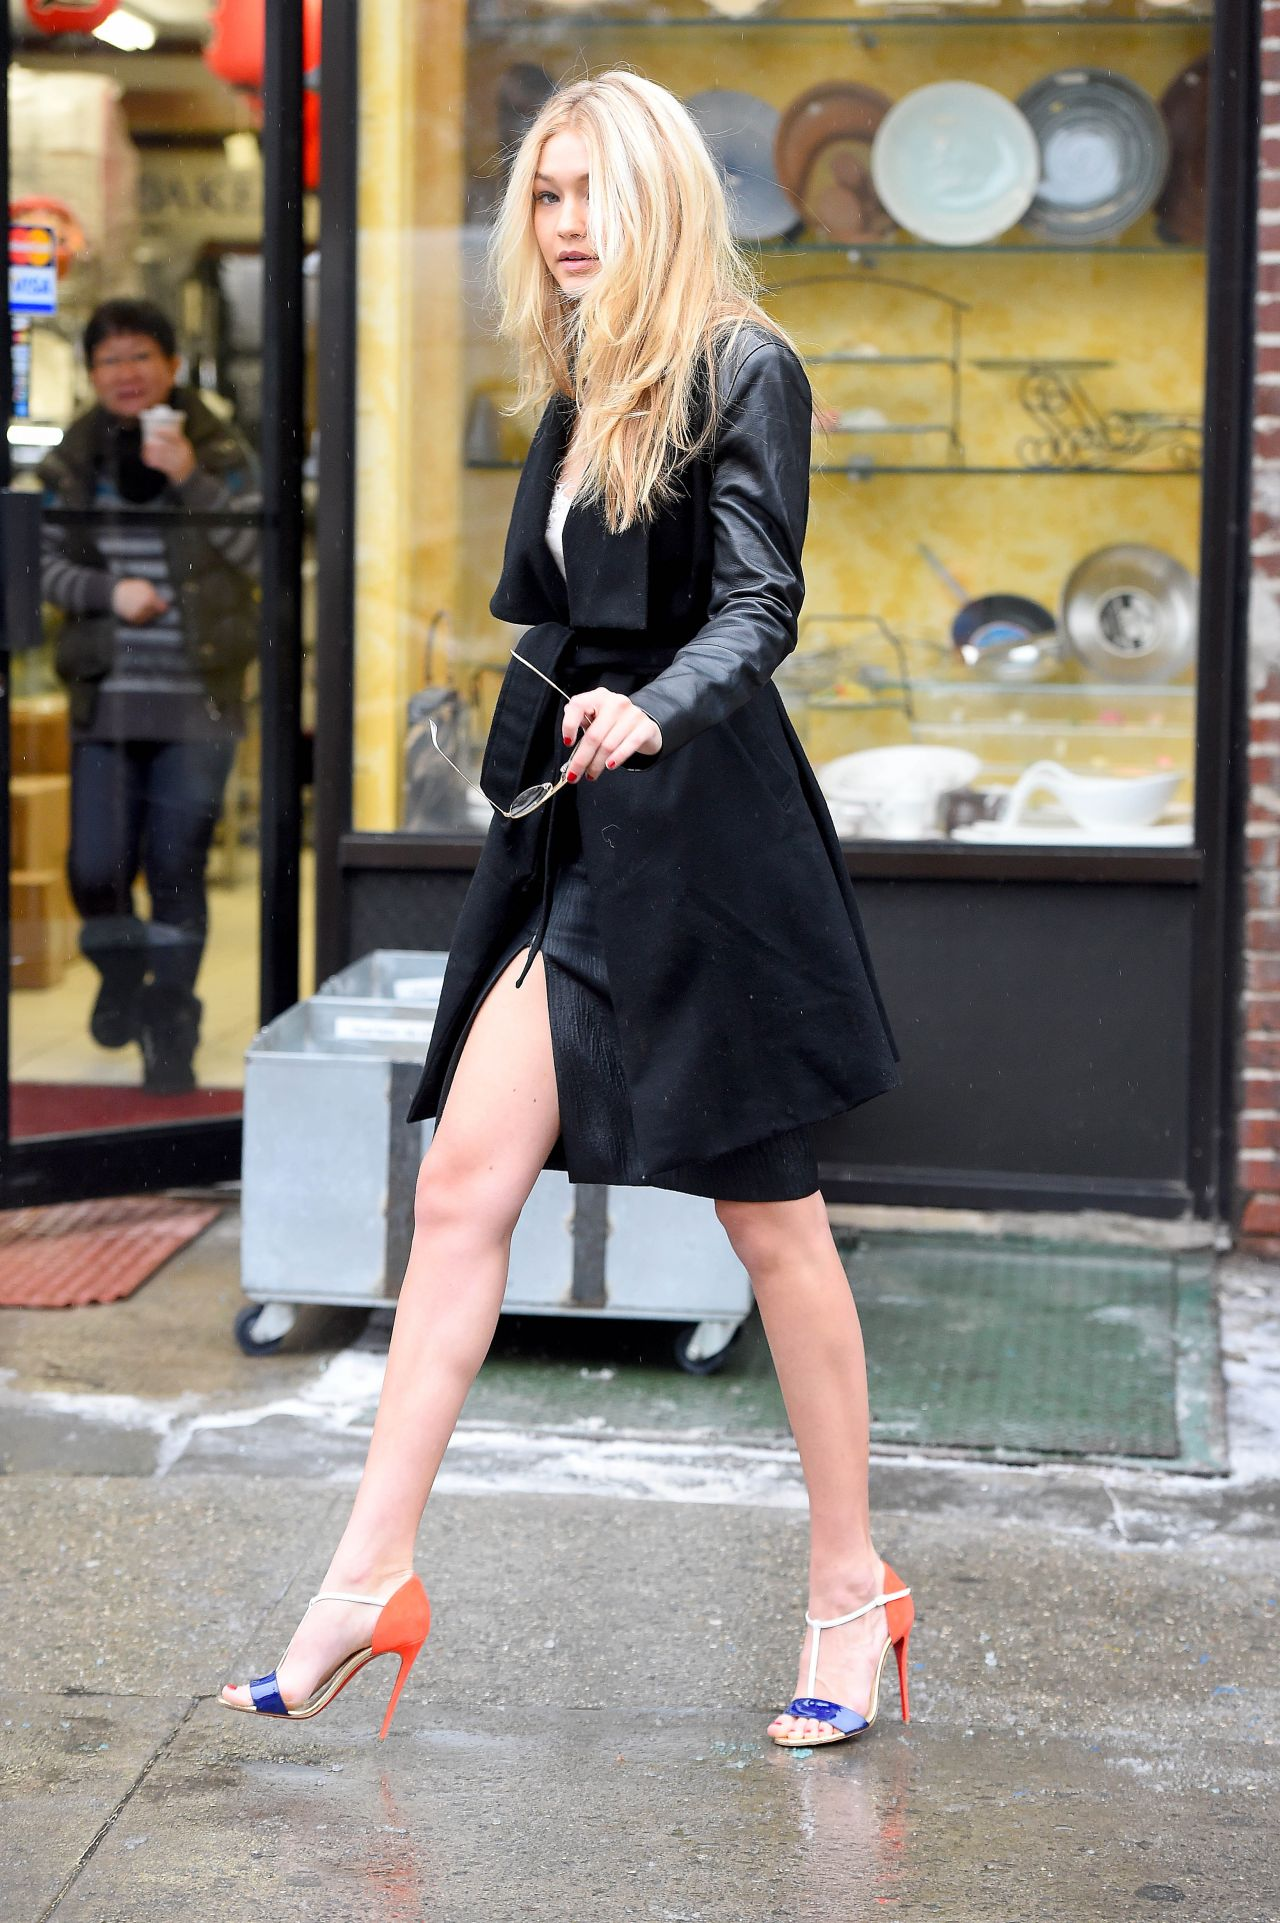 whats in and out in fashion 2015 gigi hadid 2015 fotos de ...